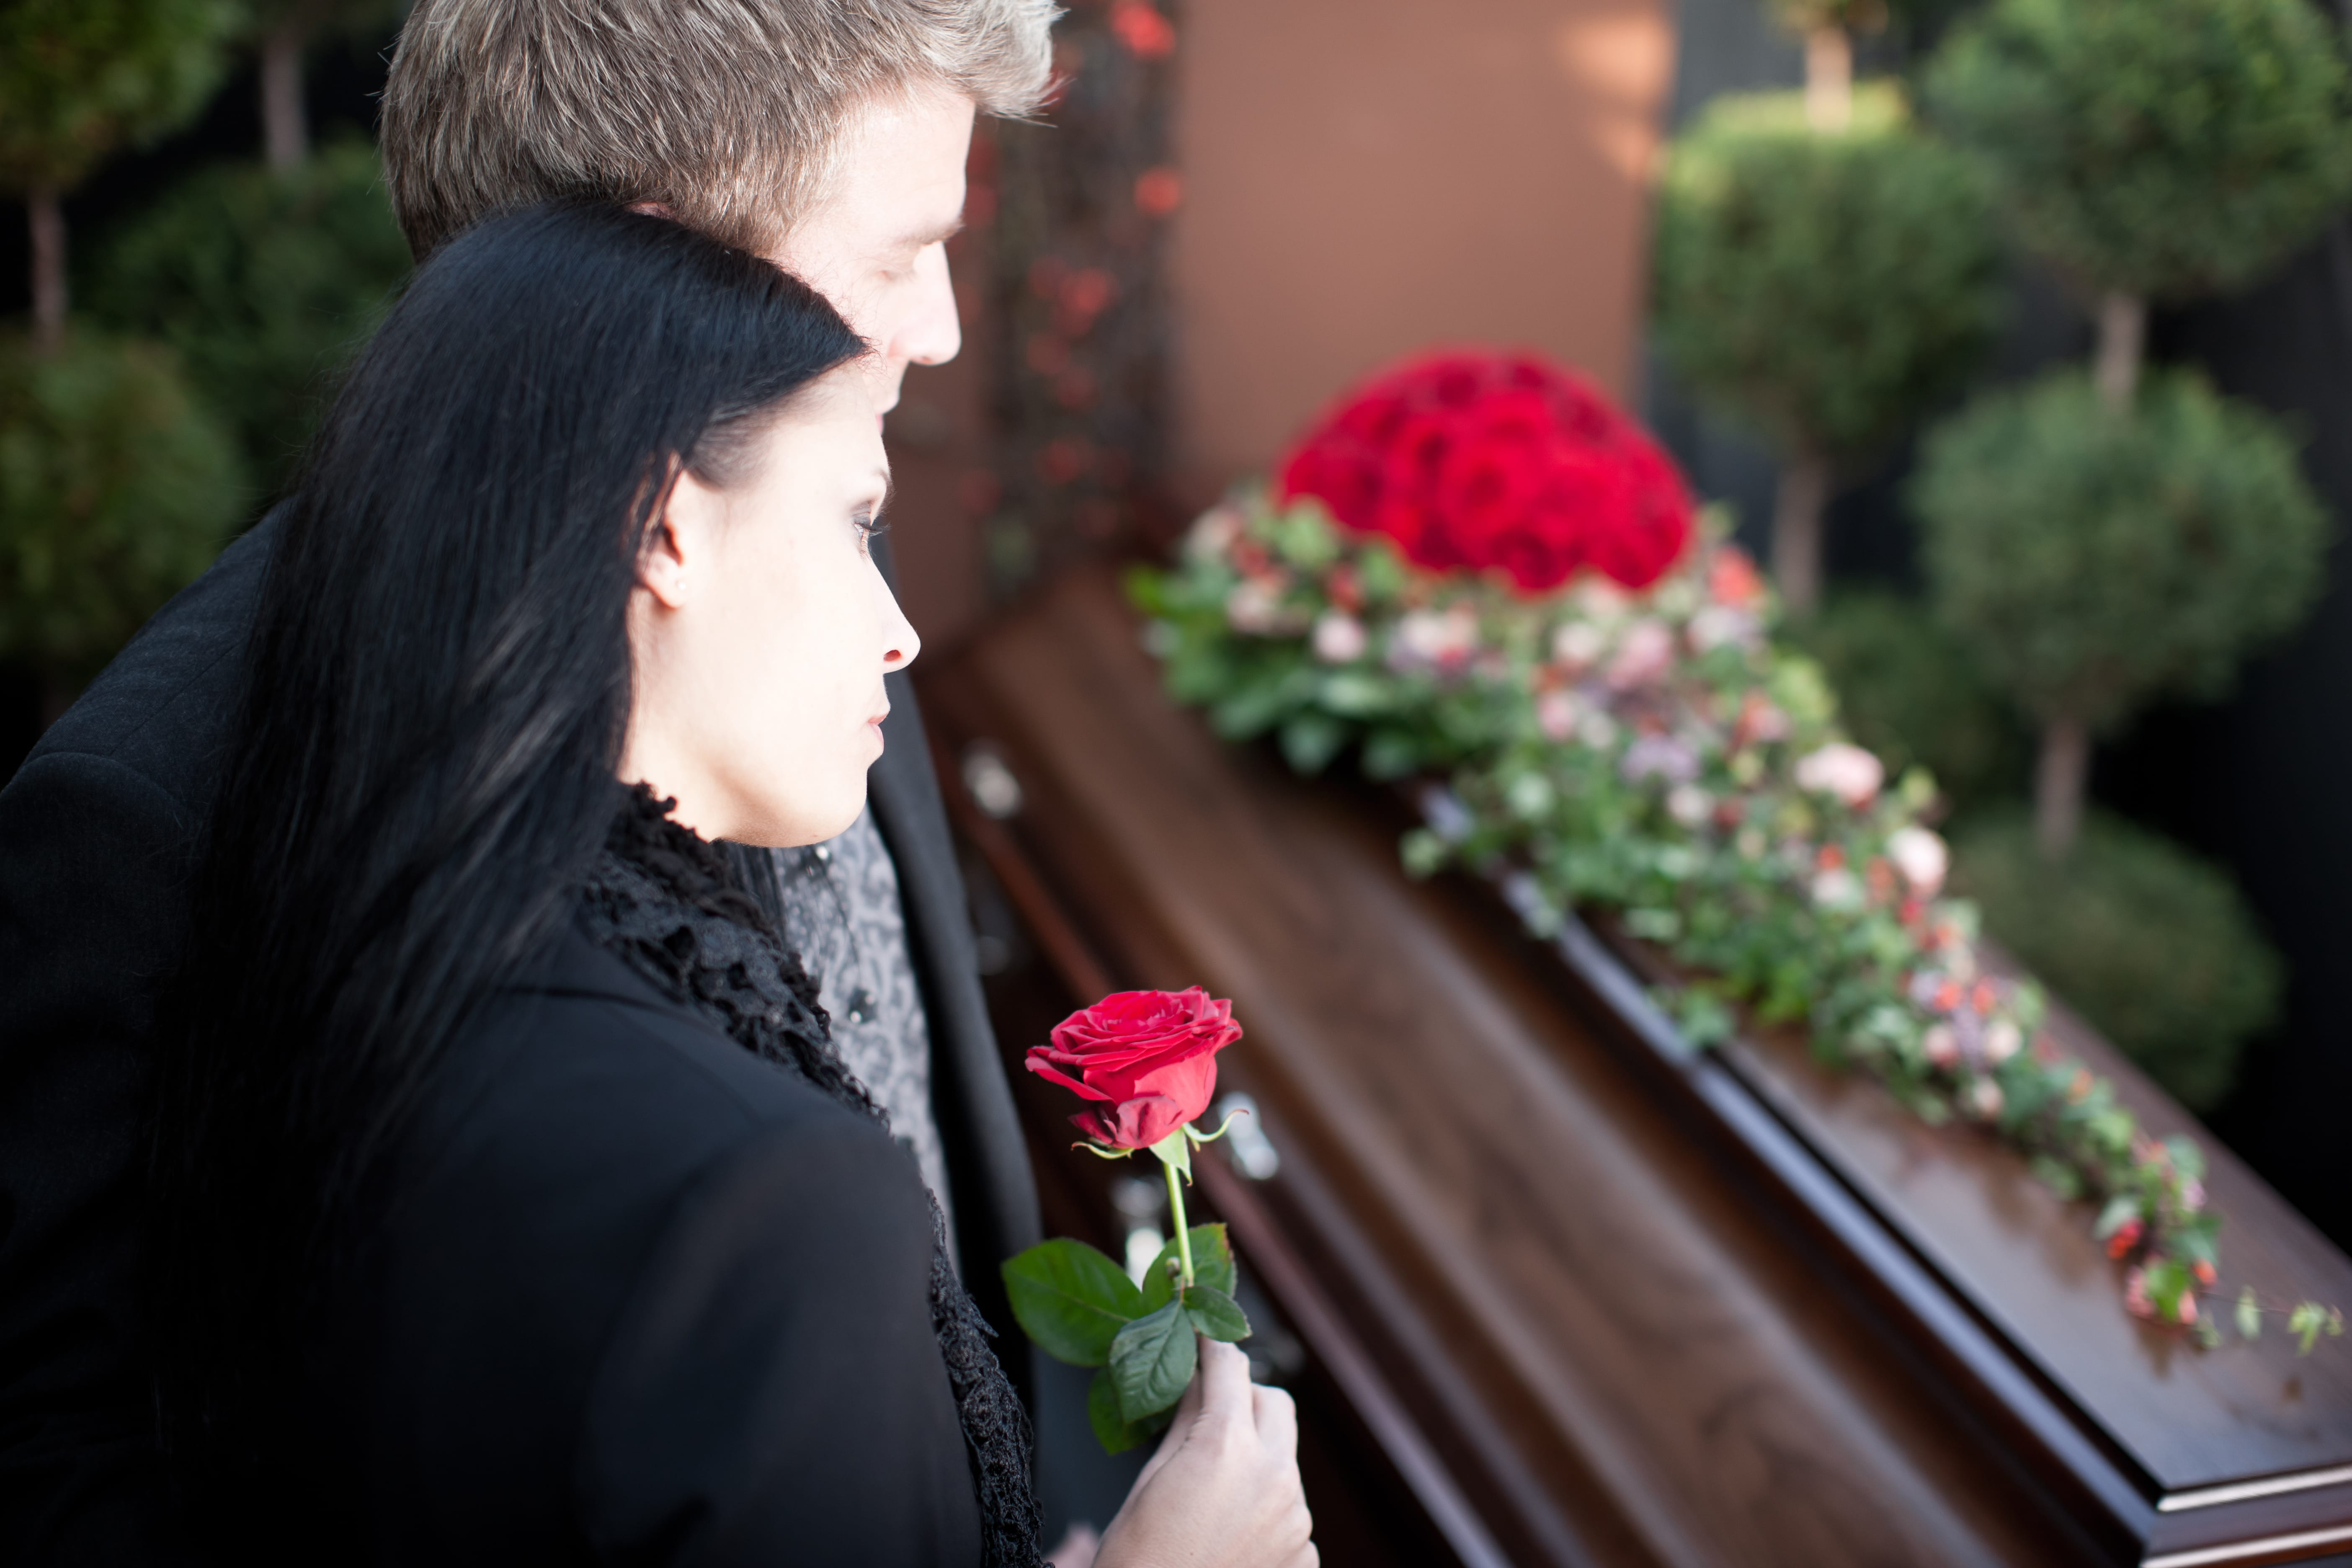 Grieving family at funeral service